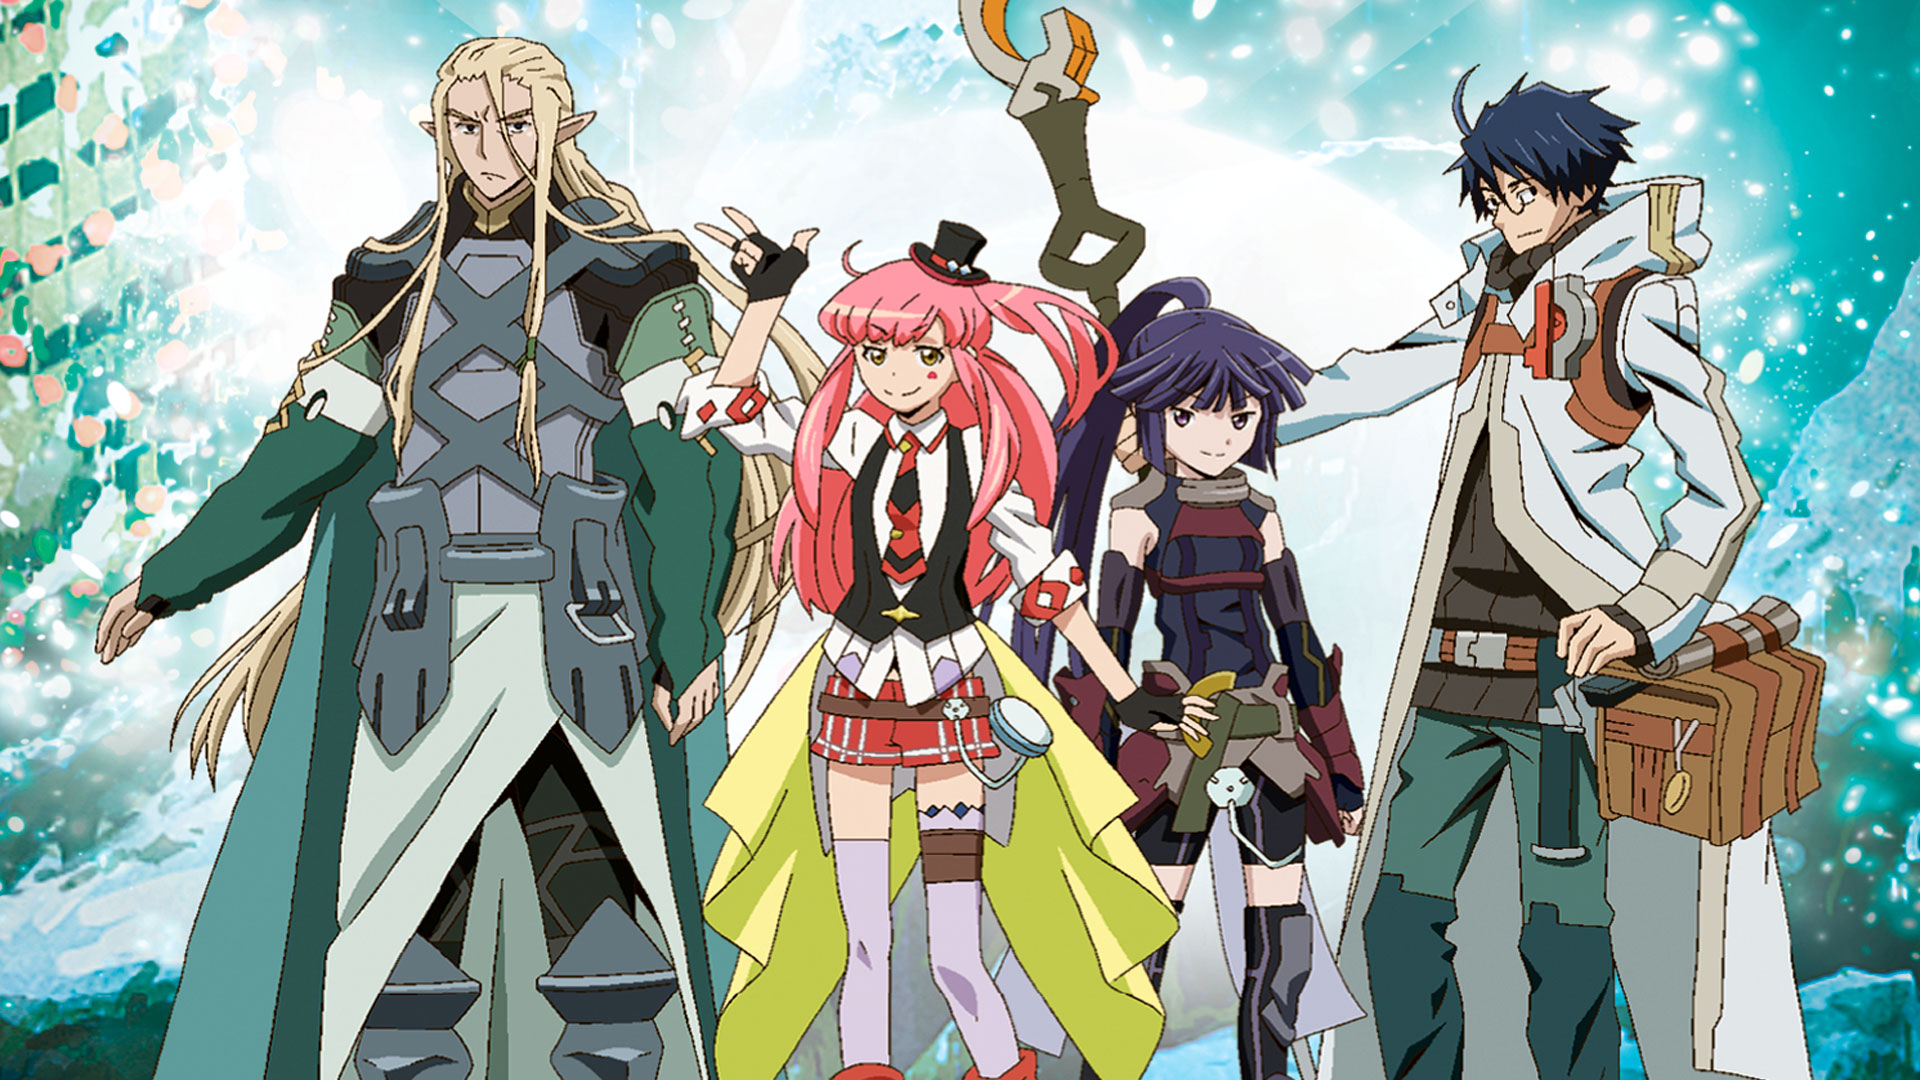 log horizon season 2 part 1 bluray review modish geek